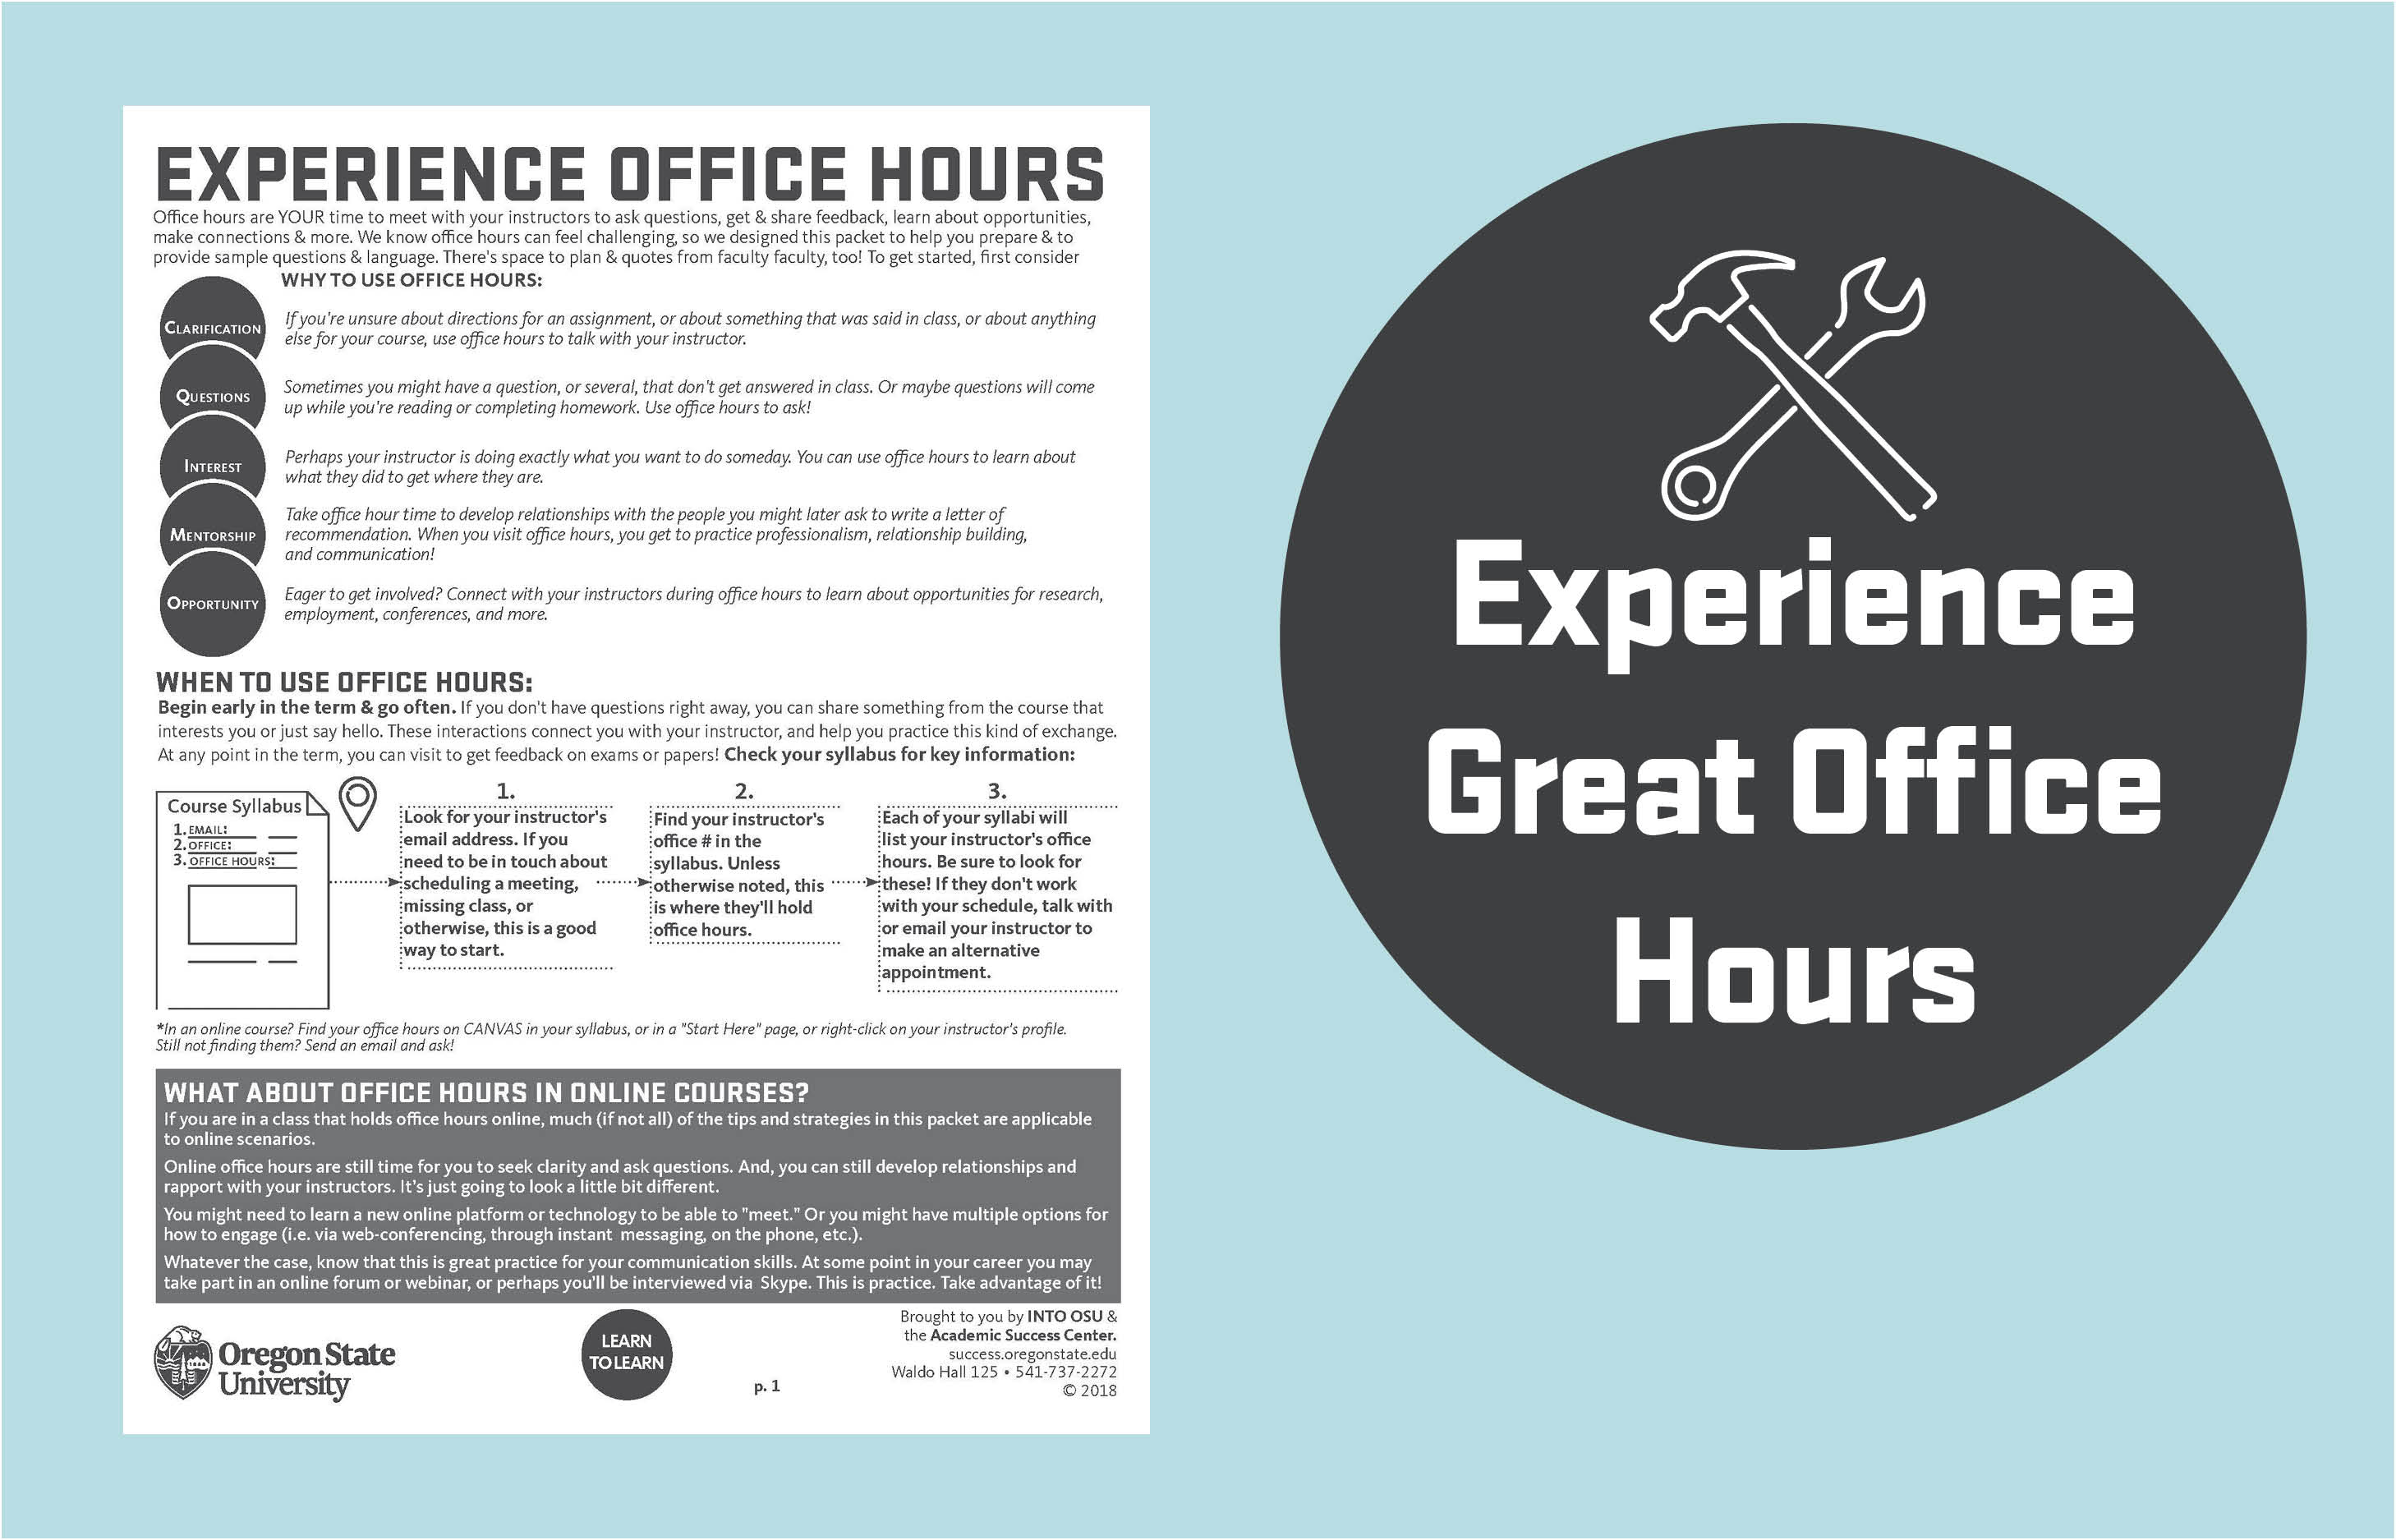 Experience Great Office Hours